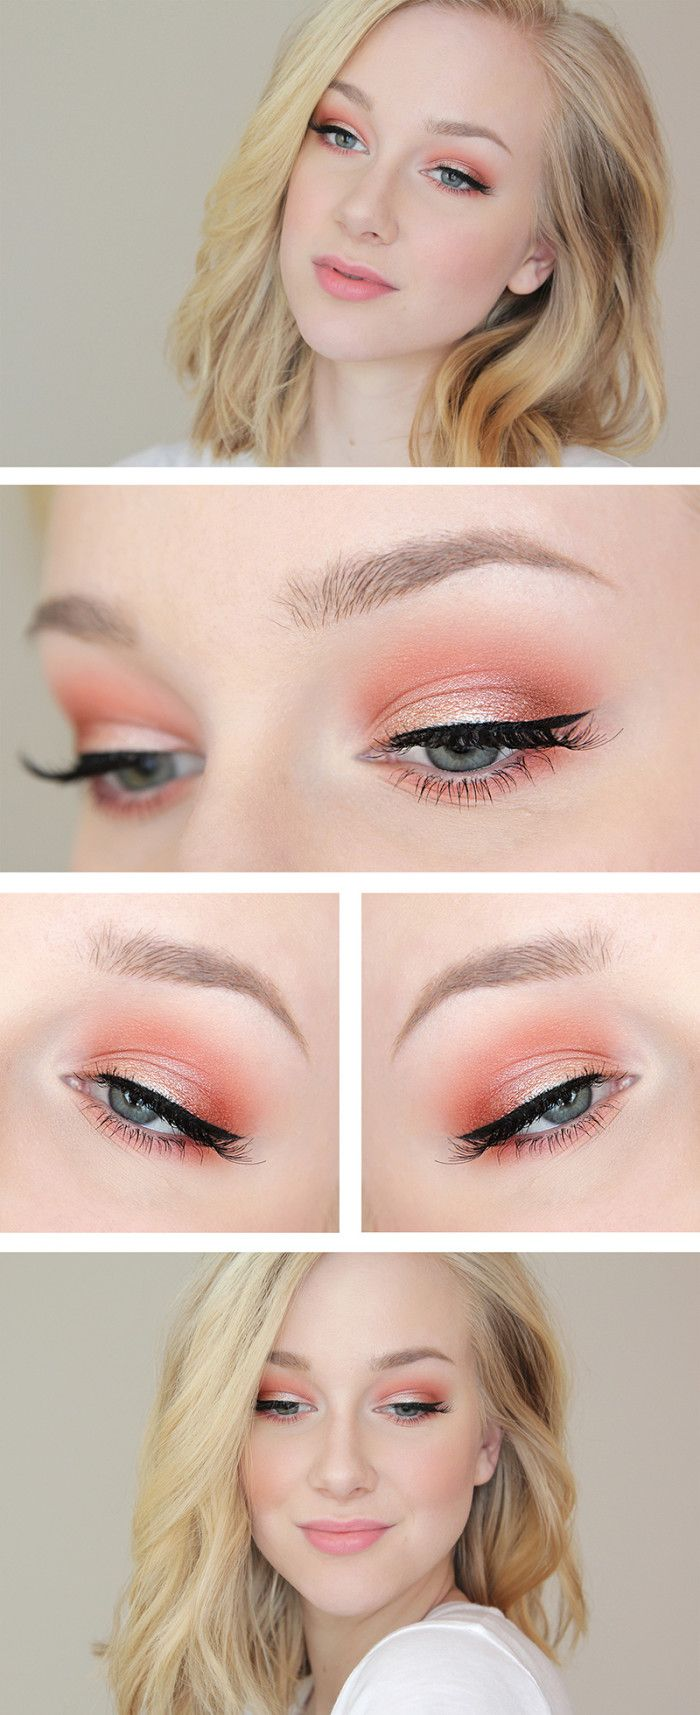 Instagram: roseherdmakeup Pinterest: @haveyallherd // Fun, colorful, but still TOTALLY wearable look! You can substitute warm browns for the corals to transition this look perfectly for fall! #coralmakeup #fallmakeup #summermakeup